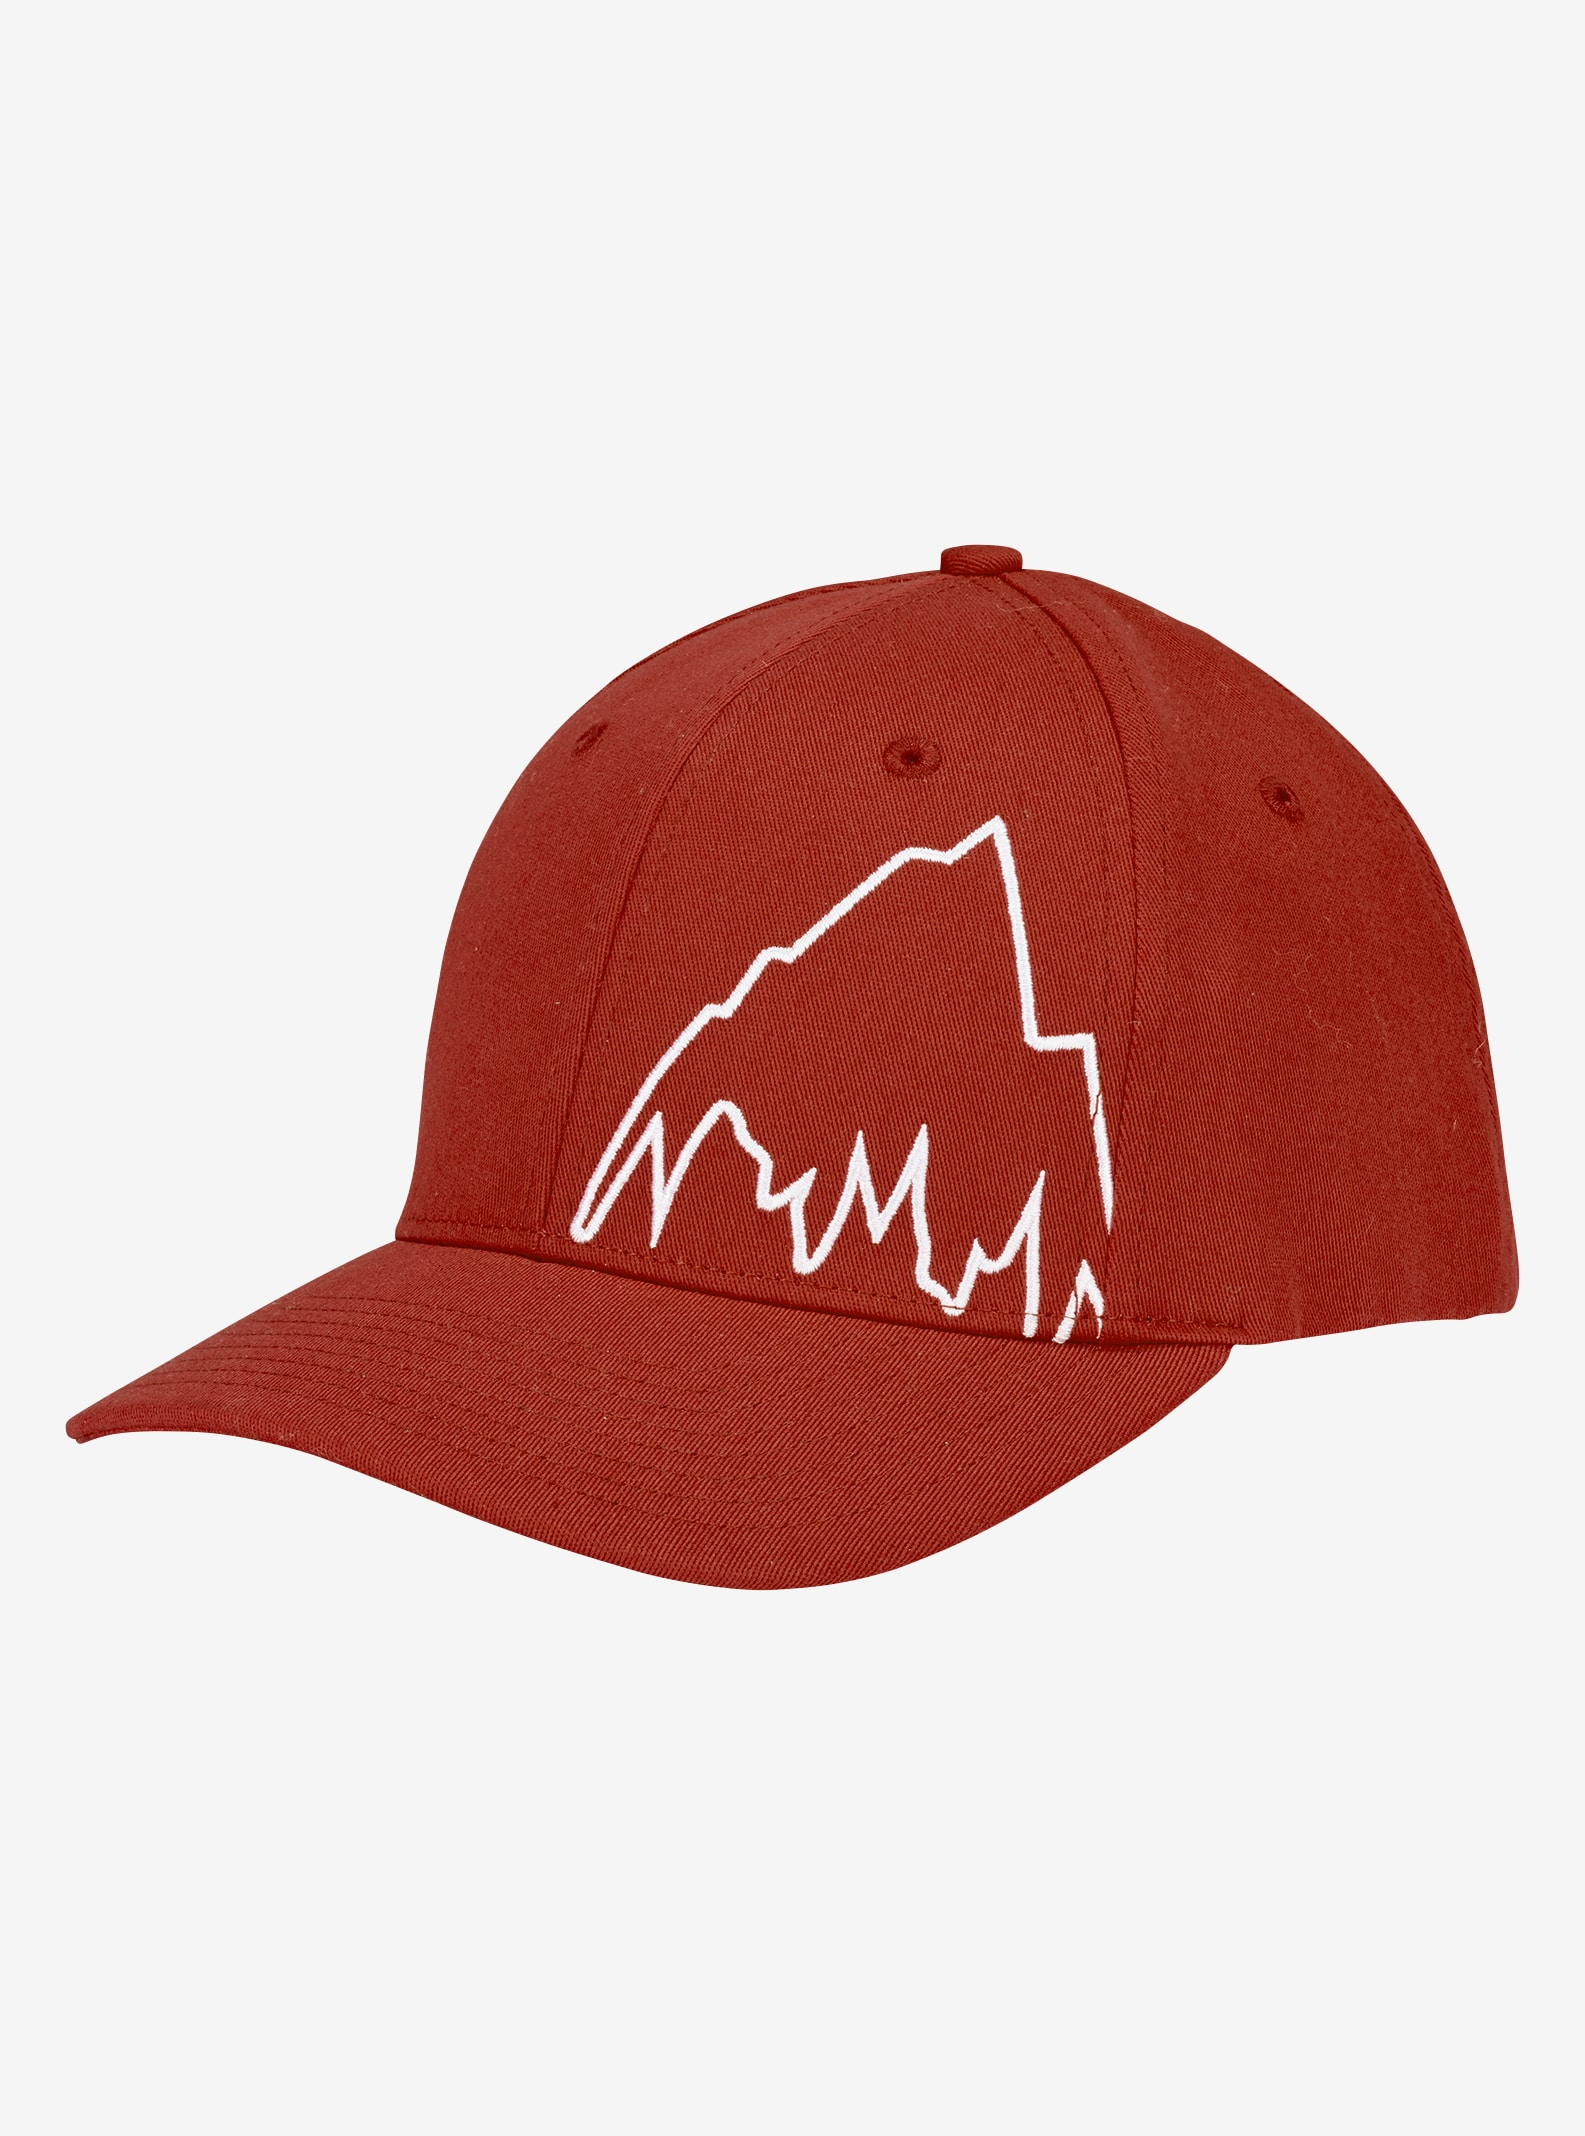 Boys' Burton Mountain Slidestyle Hat shown in Bitters